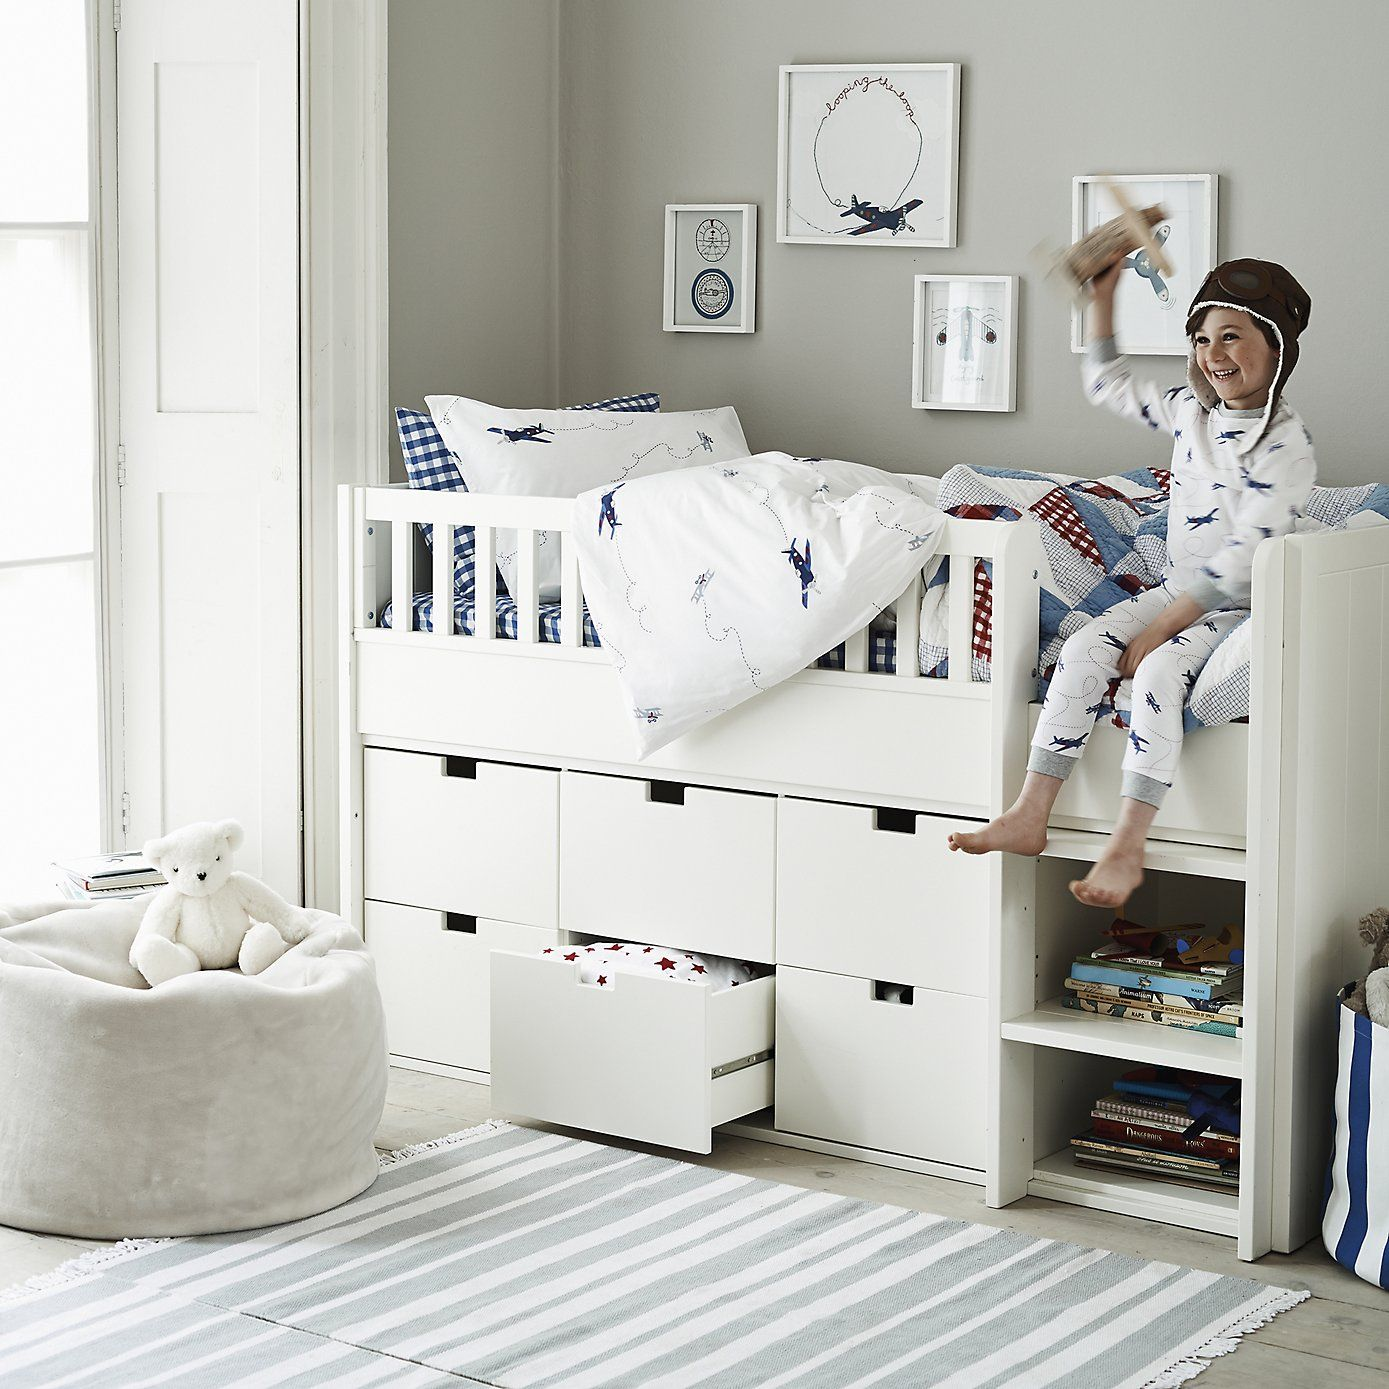 Classic Mid Sleeper Bed The White Company White Bedroom Set Furniture Childrens Bedroom Furniture Mid Sleeper Bed